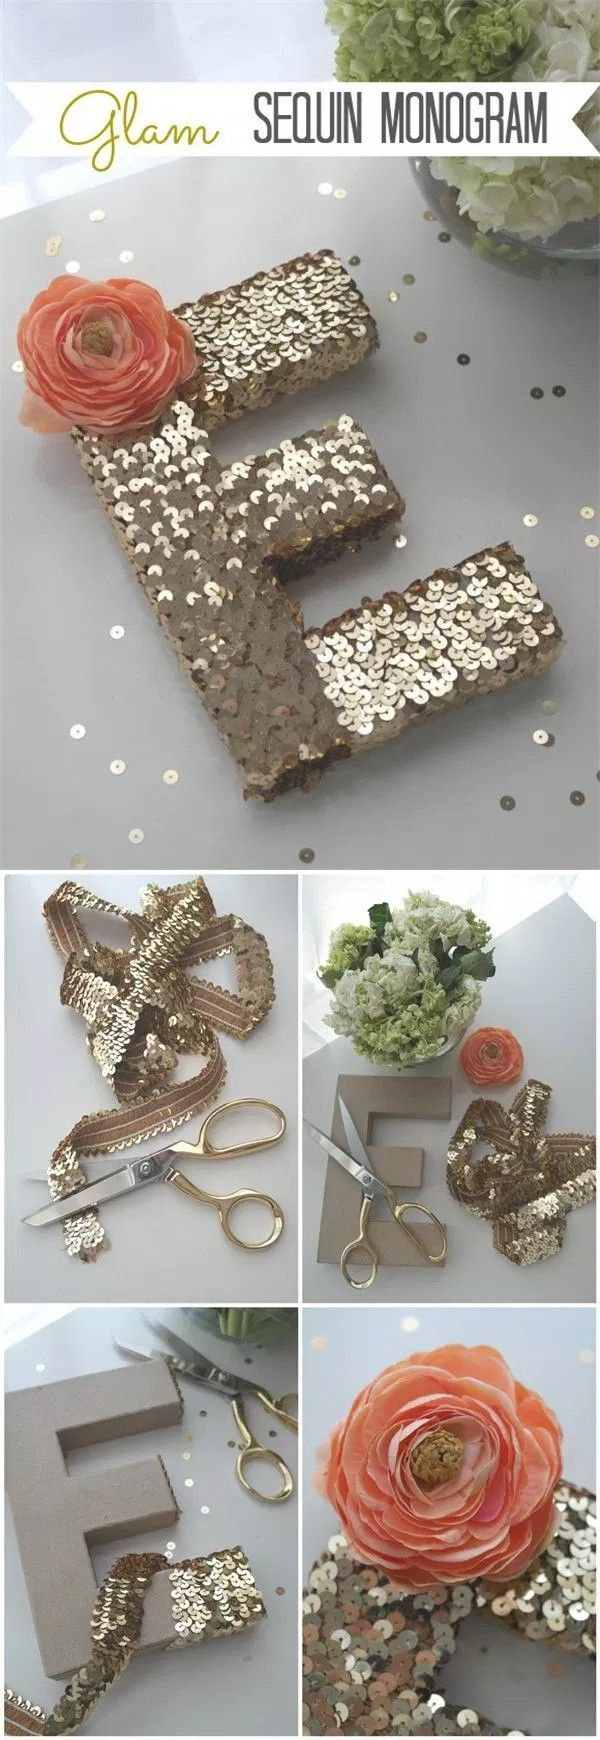 Pin By Abril Hardy Rey On D I Y Do It Yourself Cardboard Letters Decorative Letters Diy Letters